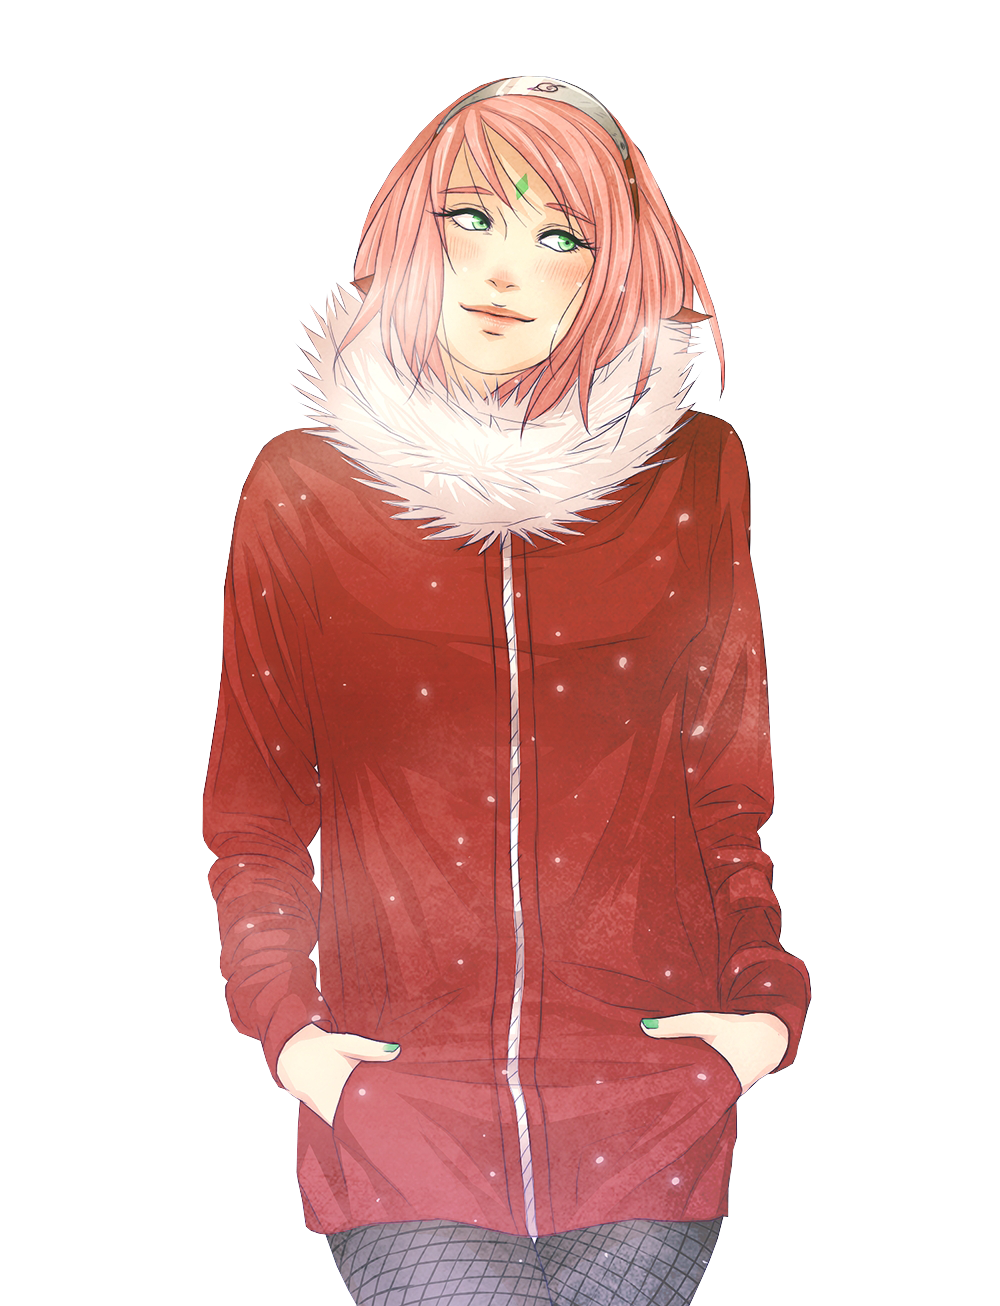 http://orig15.deviantart.net/0b40/f/2014/344/2/0/render_sakura__the_last_naruto_the_movie__by_sakuradz-d89cutl.png